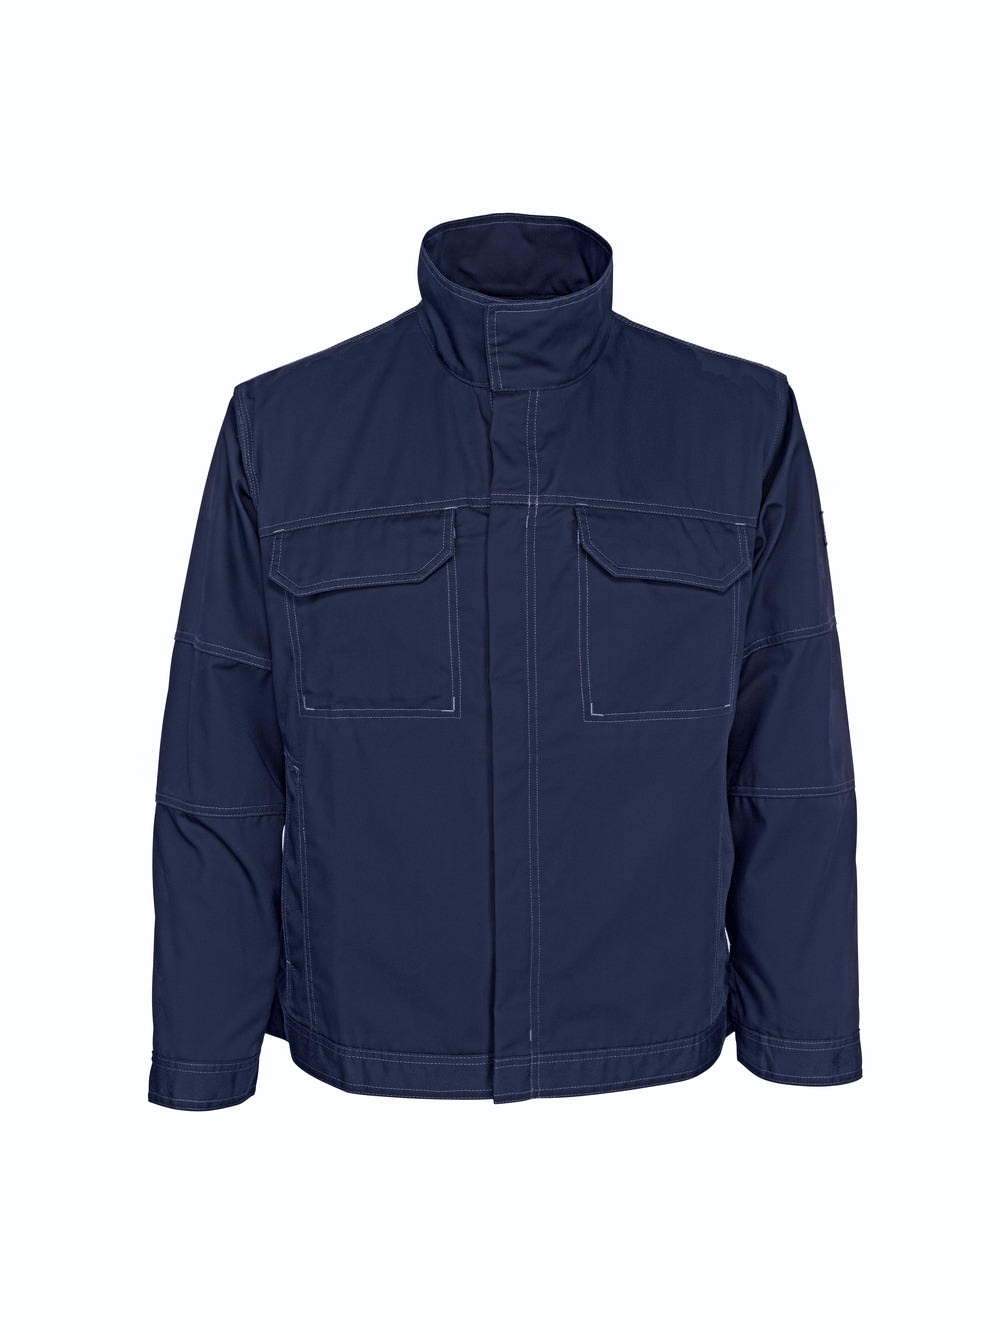 Mascot® Arlington Work Jacket